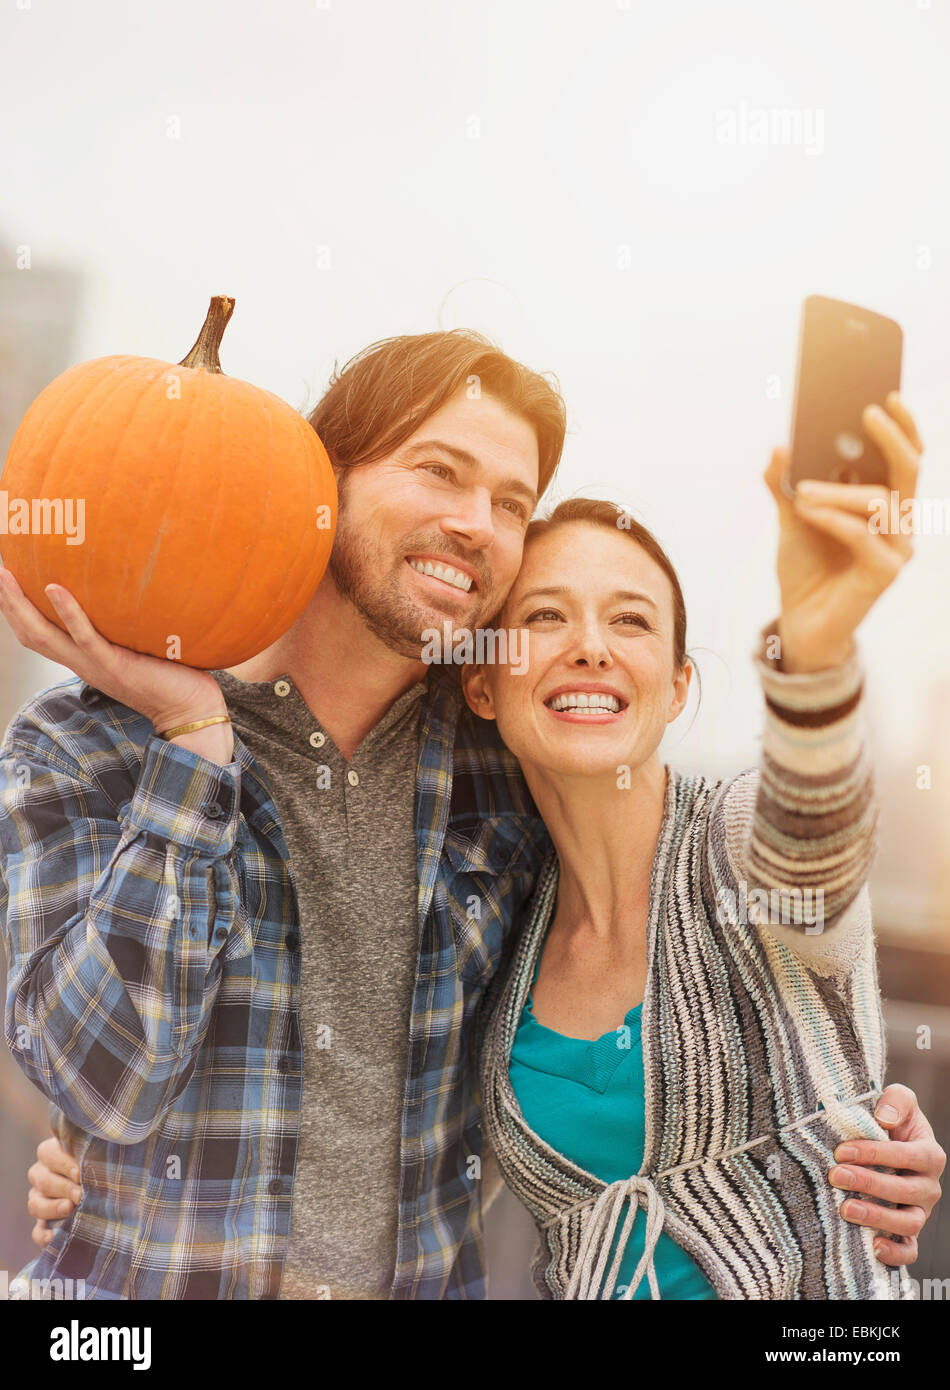 Couple taking selfie with mobile phone, man holding pumpkin - Stock Image